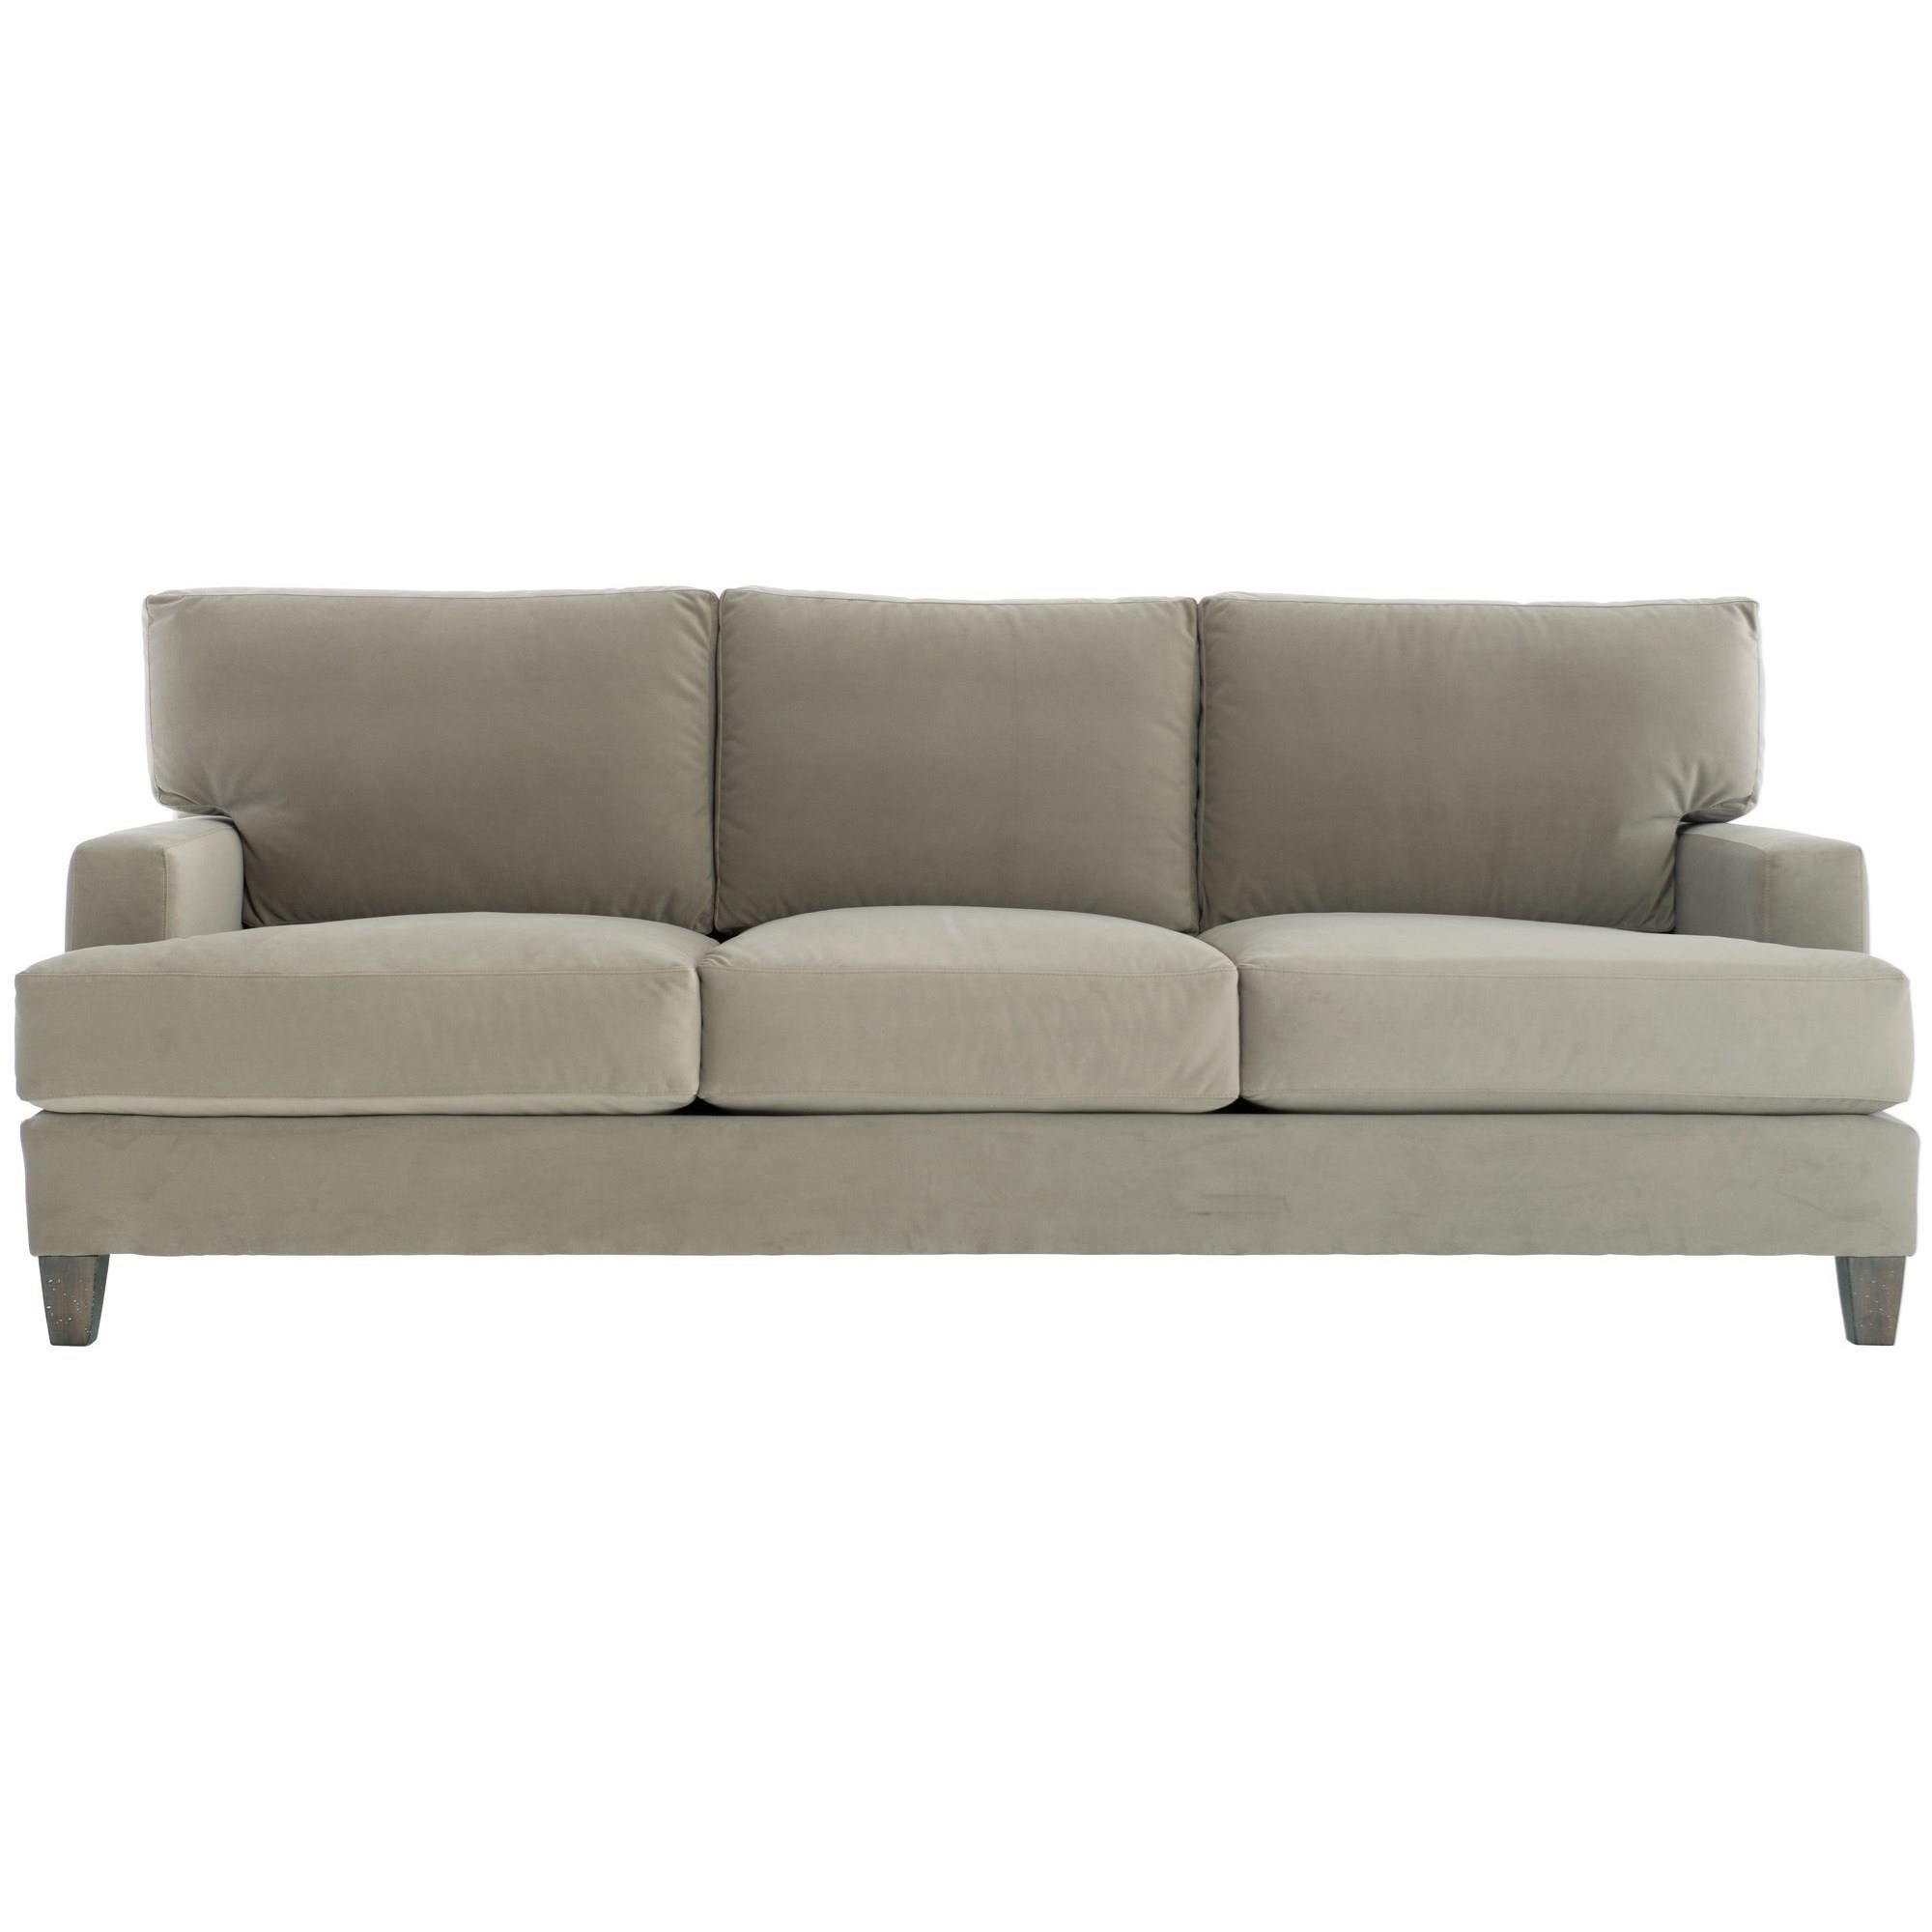 Transitional Sofa without Accent Pillows